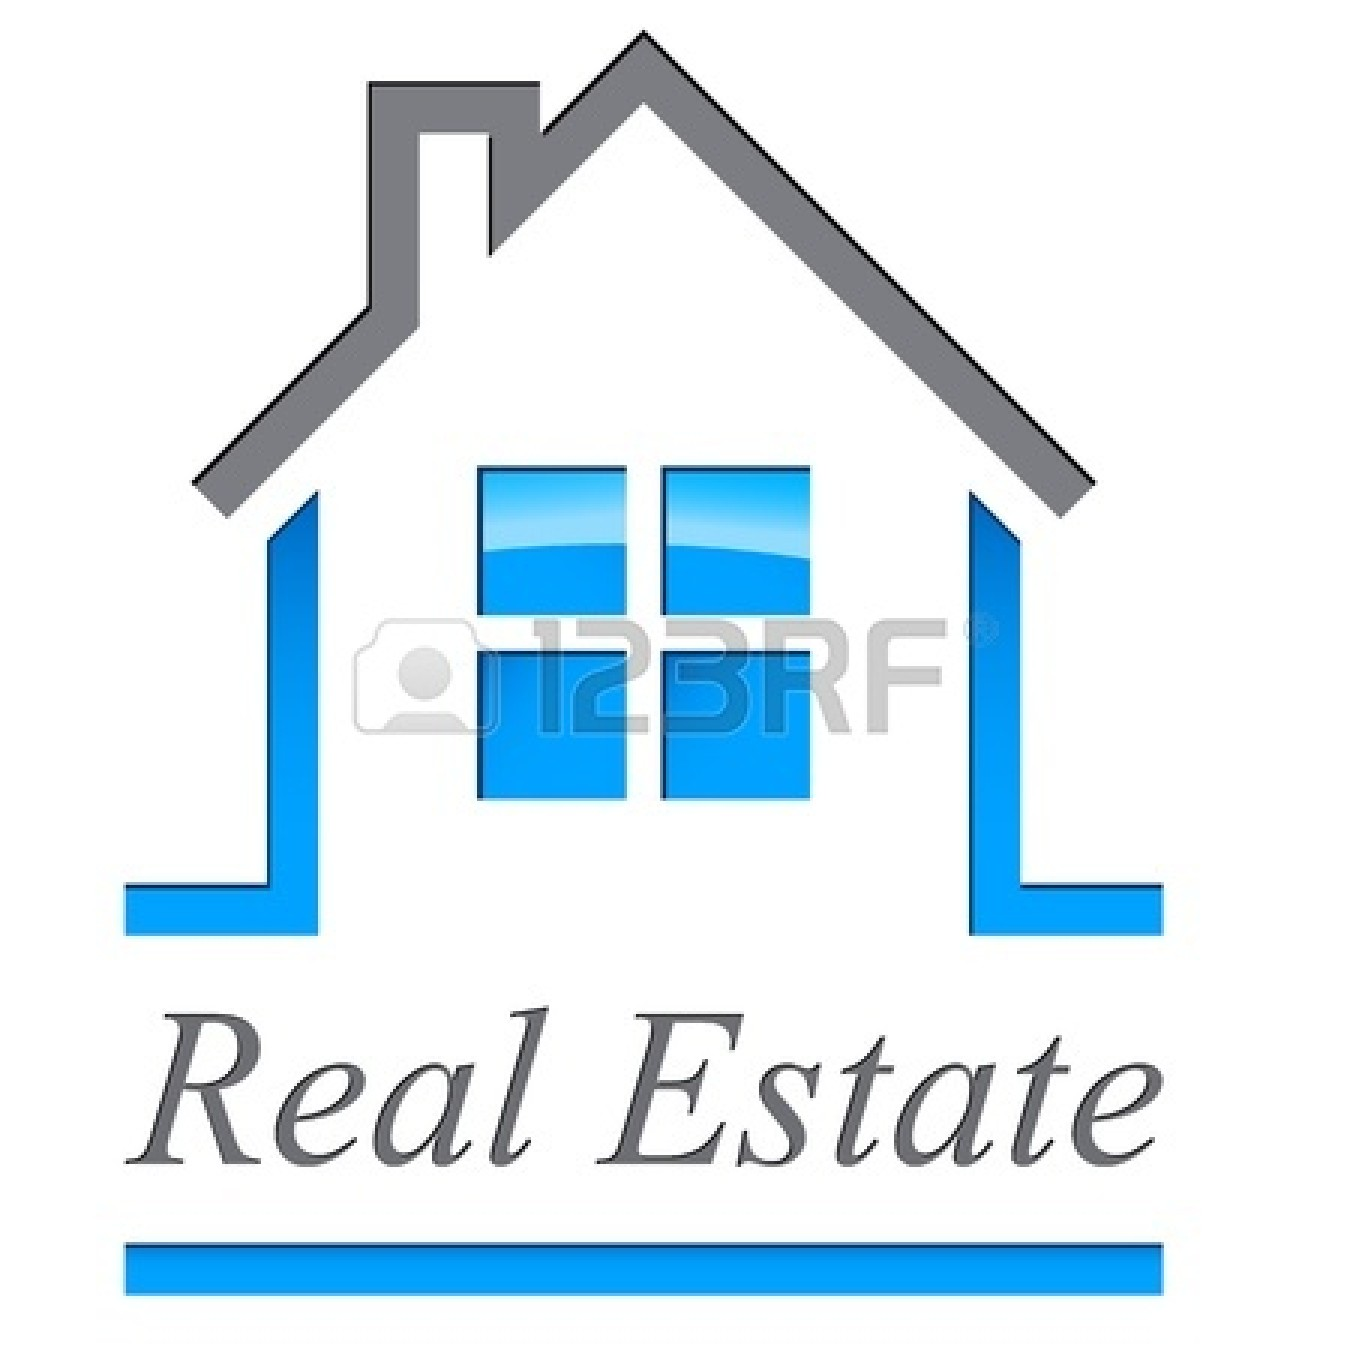 real-estate-clip-art-18219232-house--real-estate-sign.jpg